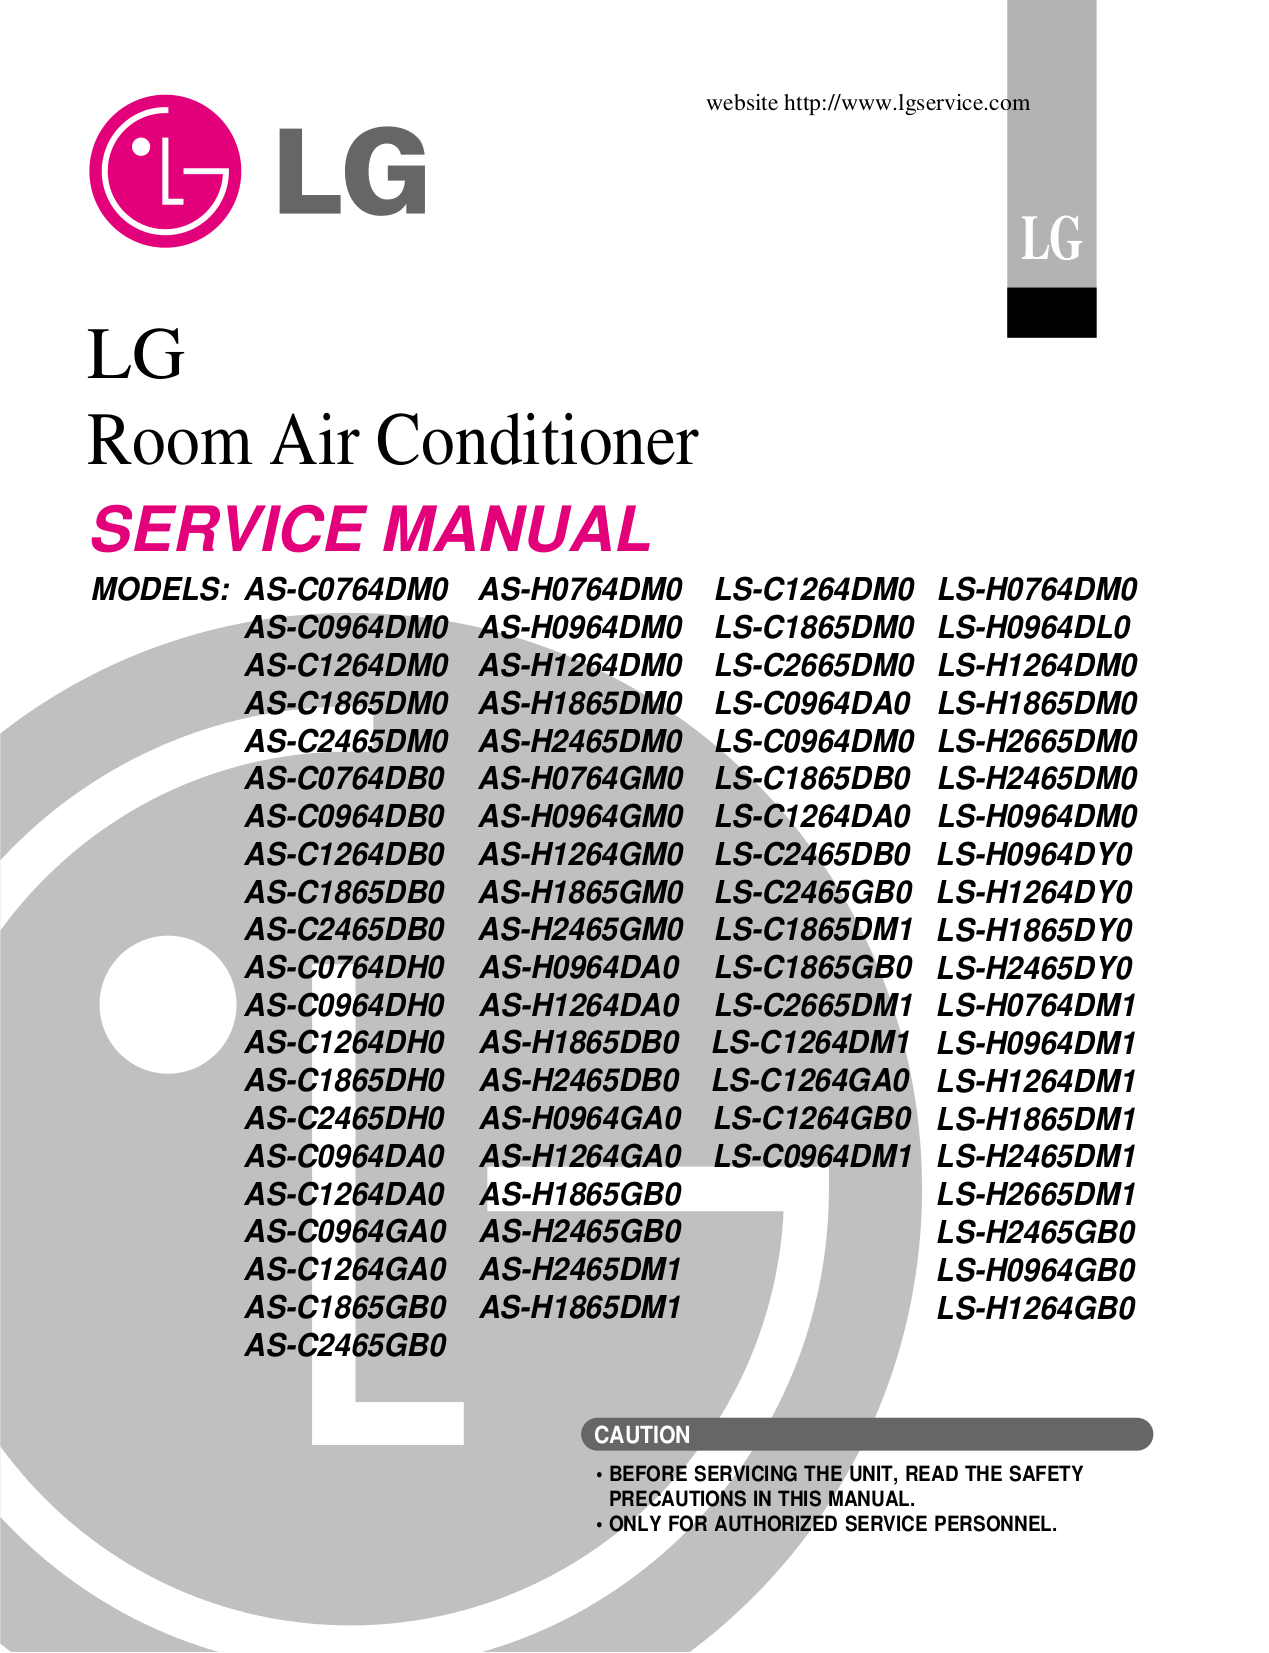 Portable Air Conditioner Wiring Diagram Lg Room